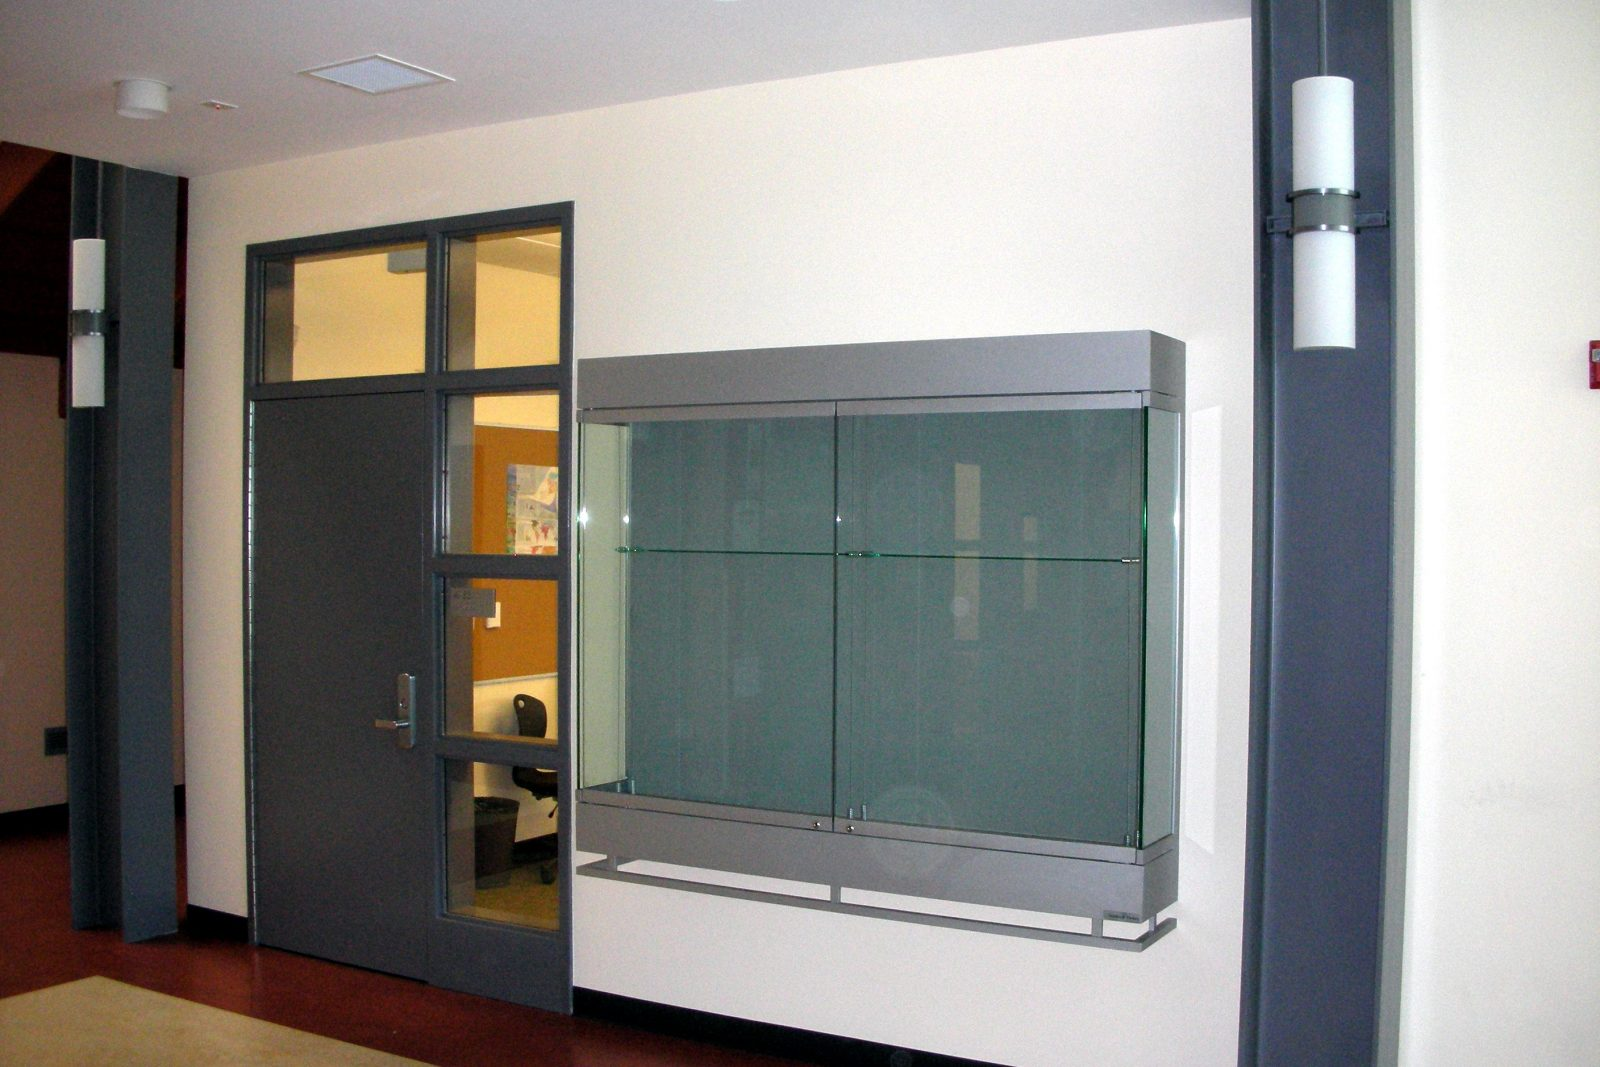 American Canyon High School - CA & Pivot Hinge Door Display Cases - The Tablet u0026 Ticket Co.